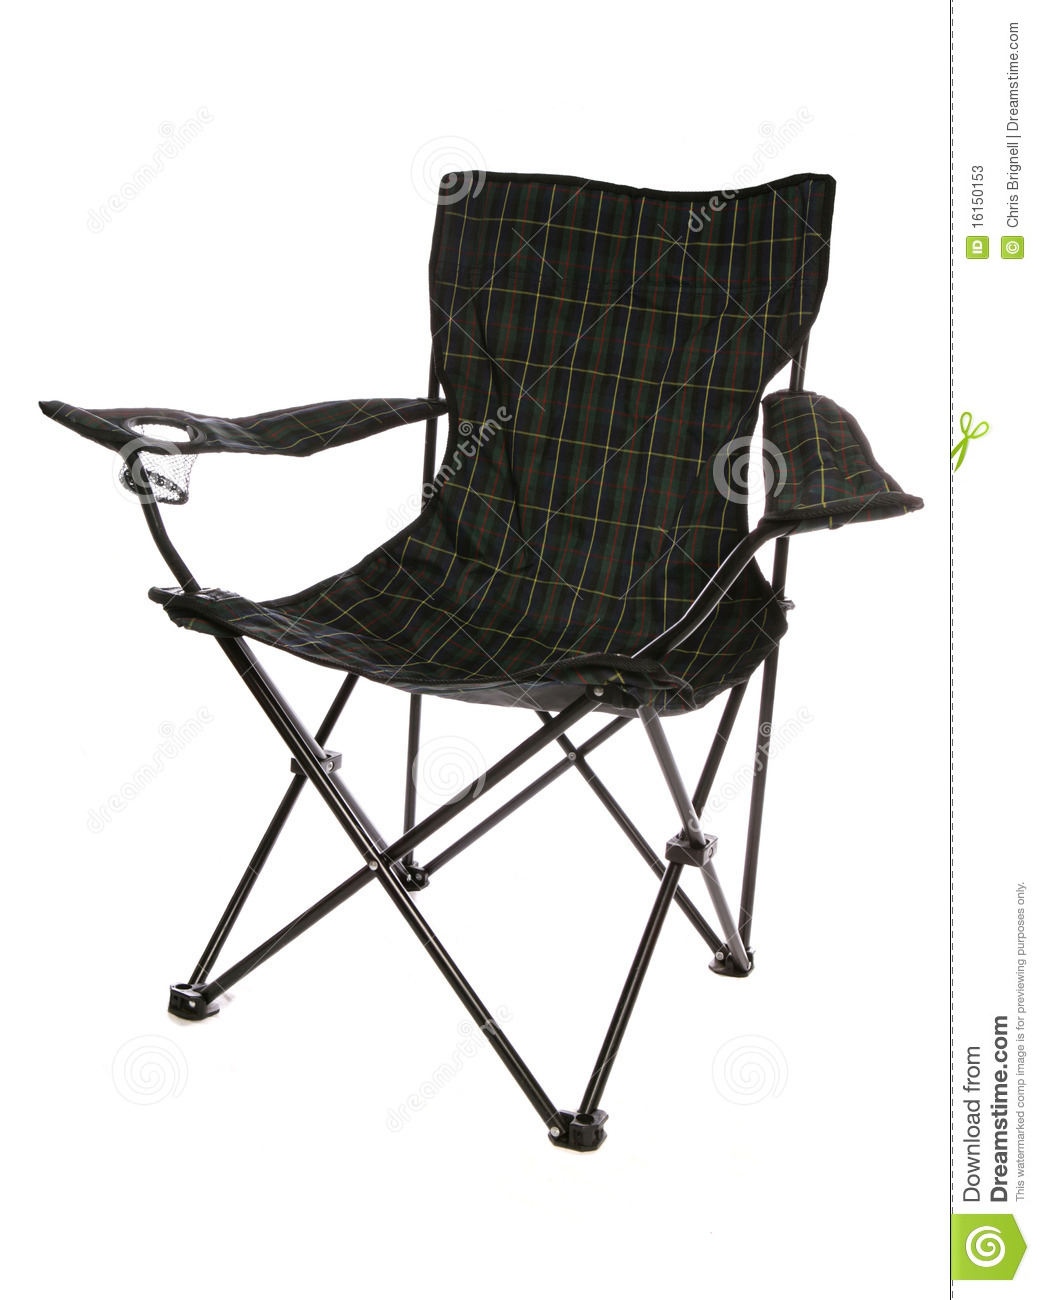 Fold Up Chair Stock s Image